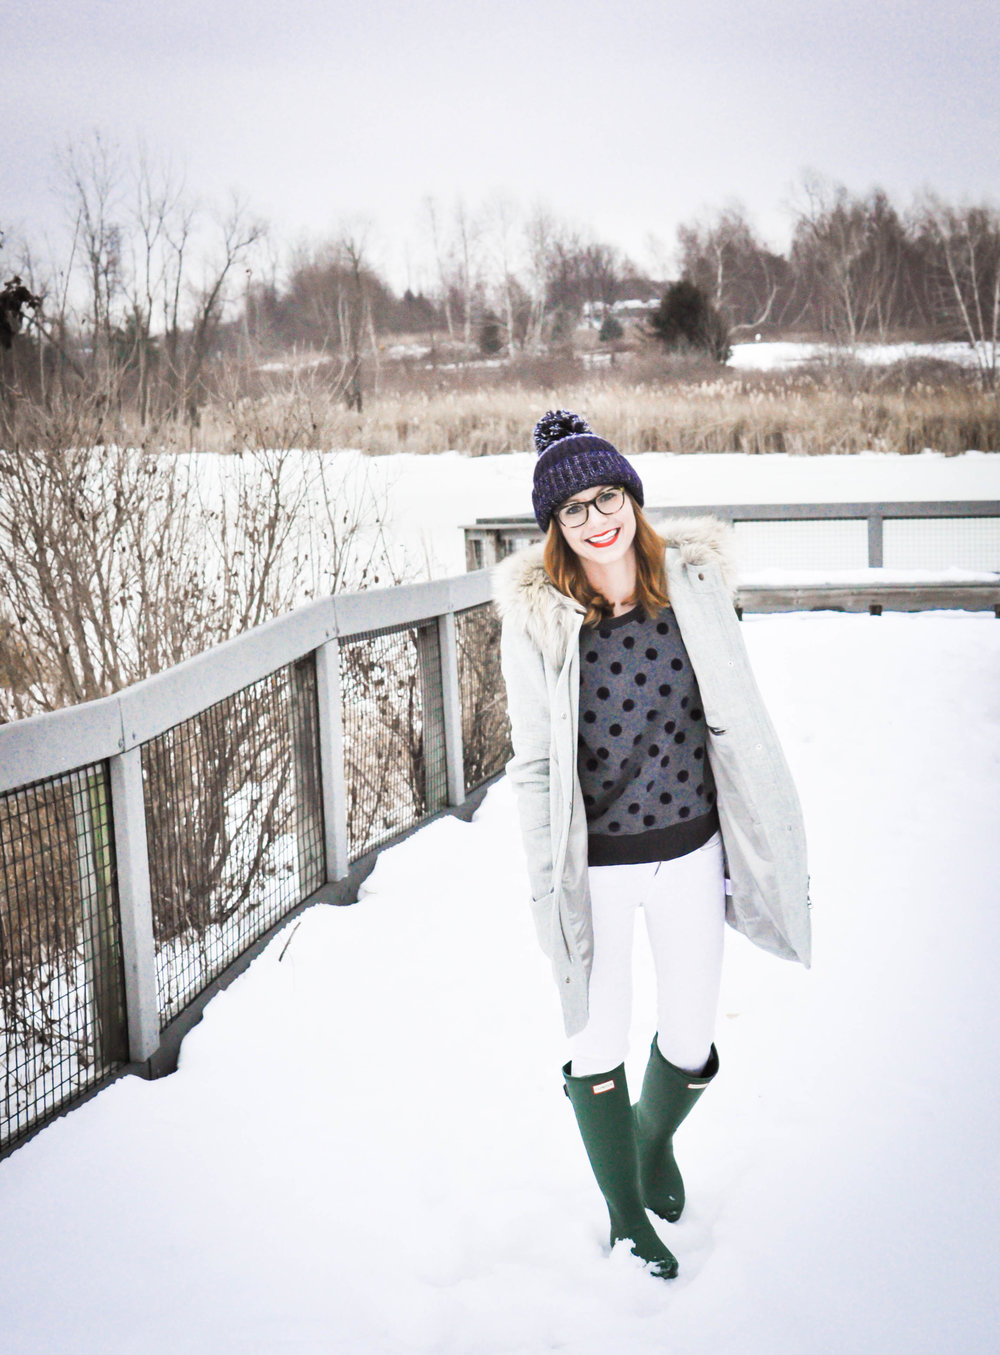 Woman wearing rubber boots in the snow